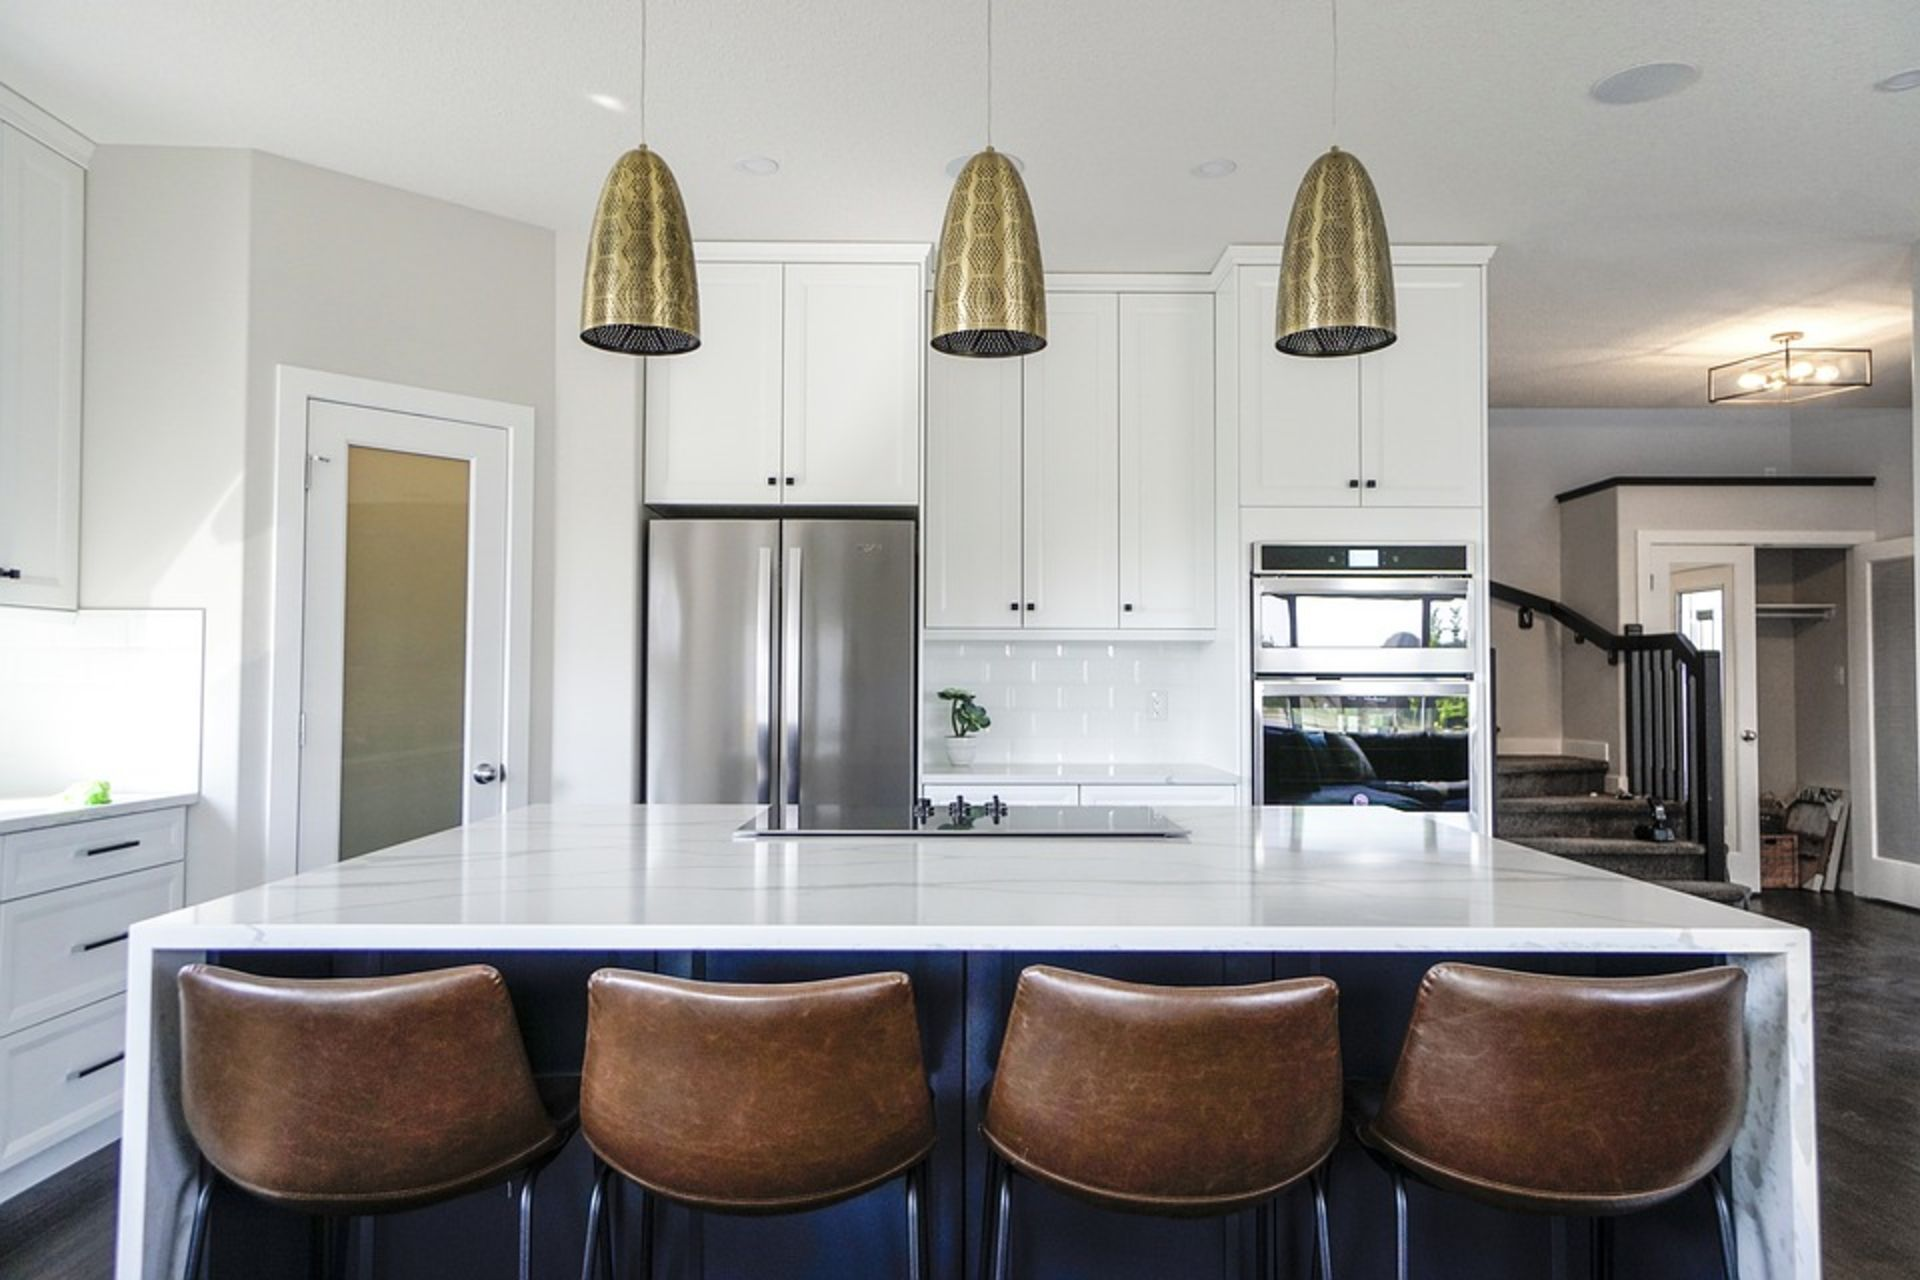 Top Home Features to Have When Entertaining